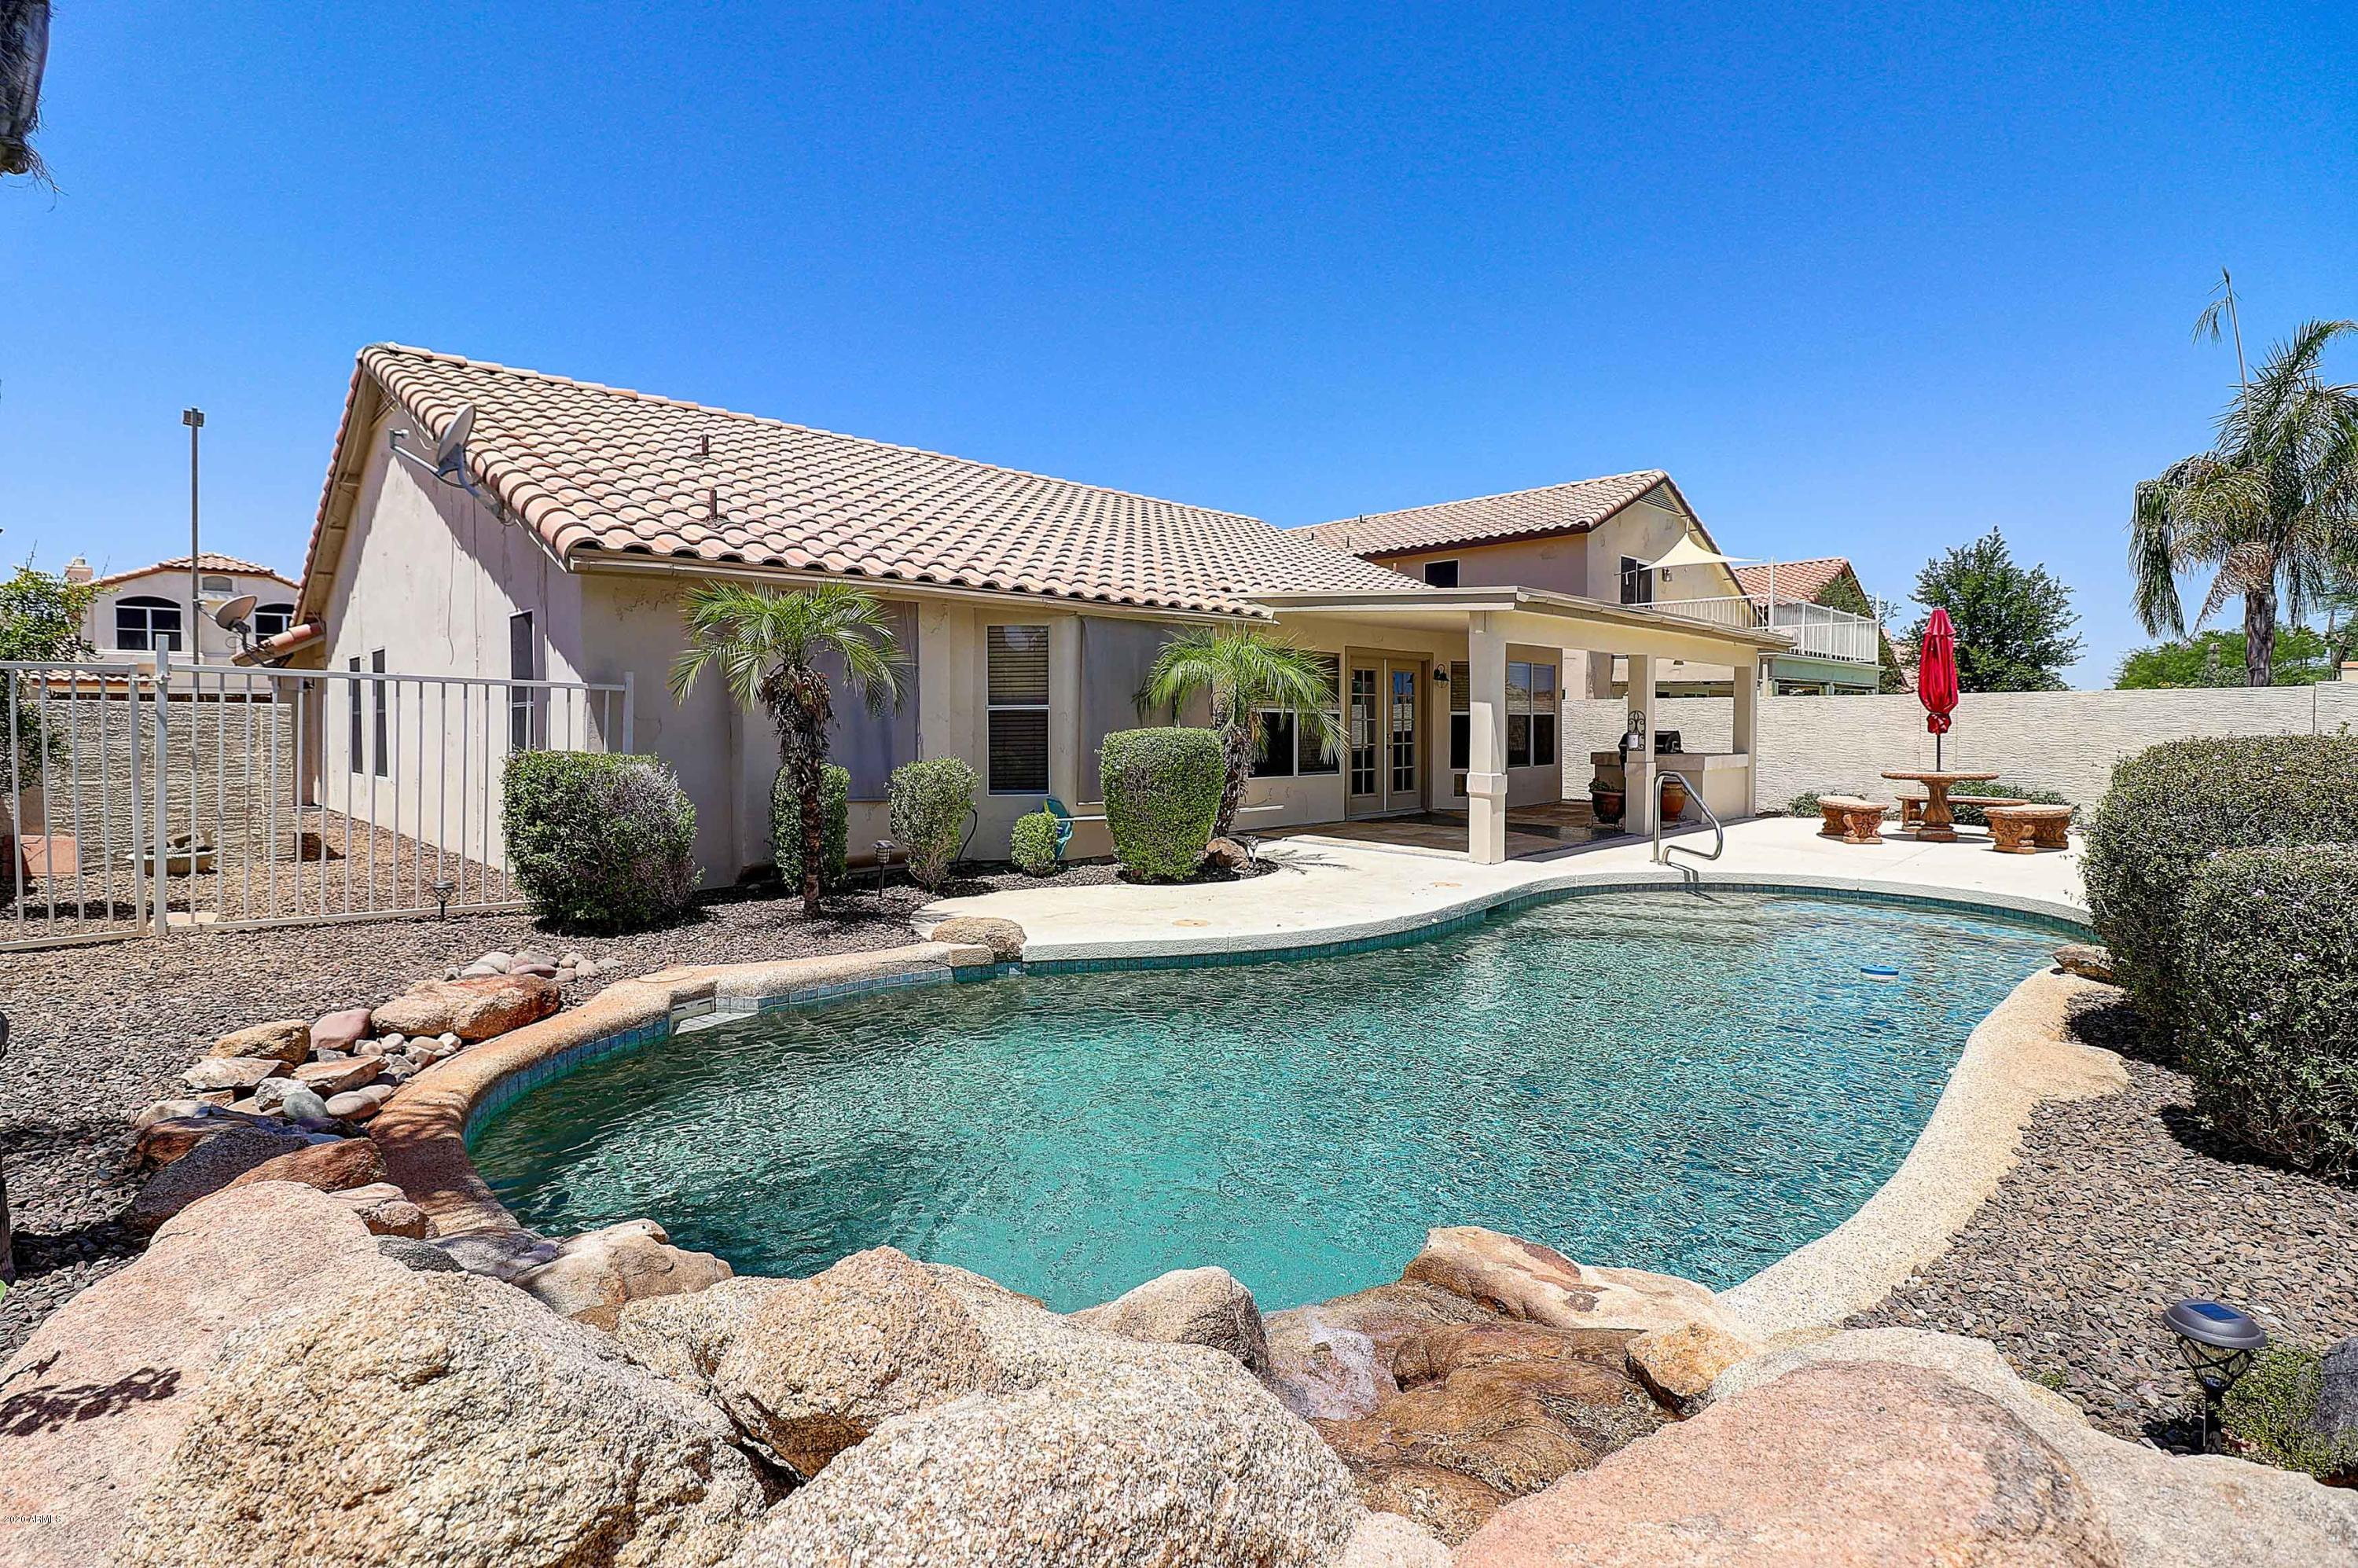 10895 S DREAMY Drive, Goodyear, AZ 85338, 3 Bedrooms Bedrooms, ,Residential Lease,For Rent,10895 S DREAMY Drive,5598034